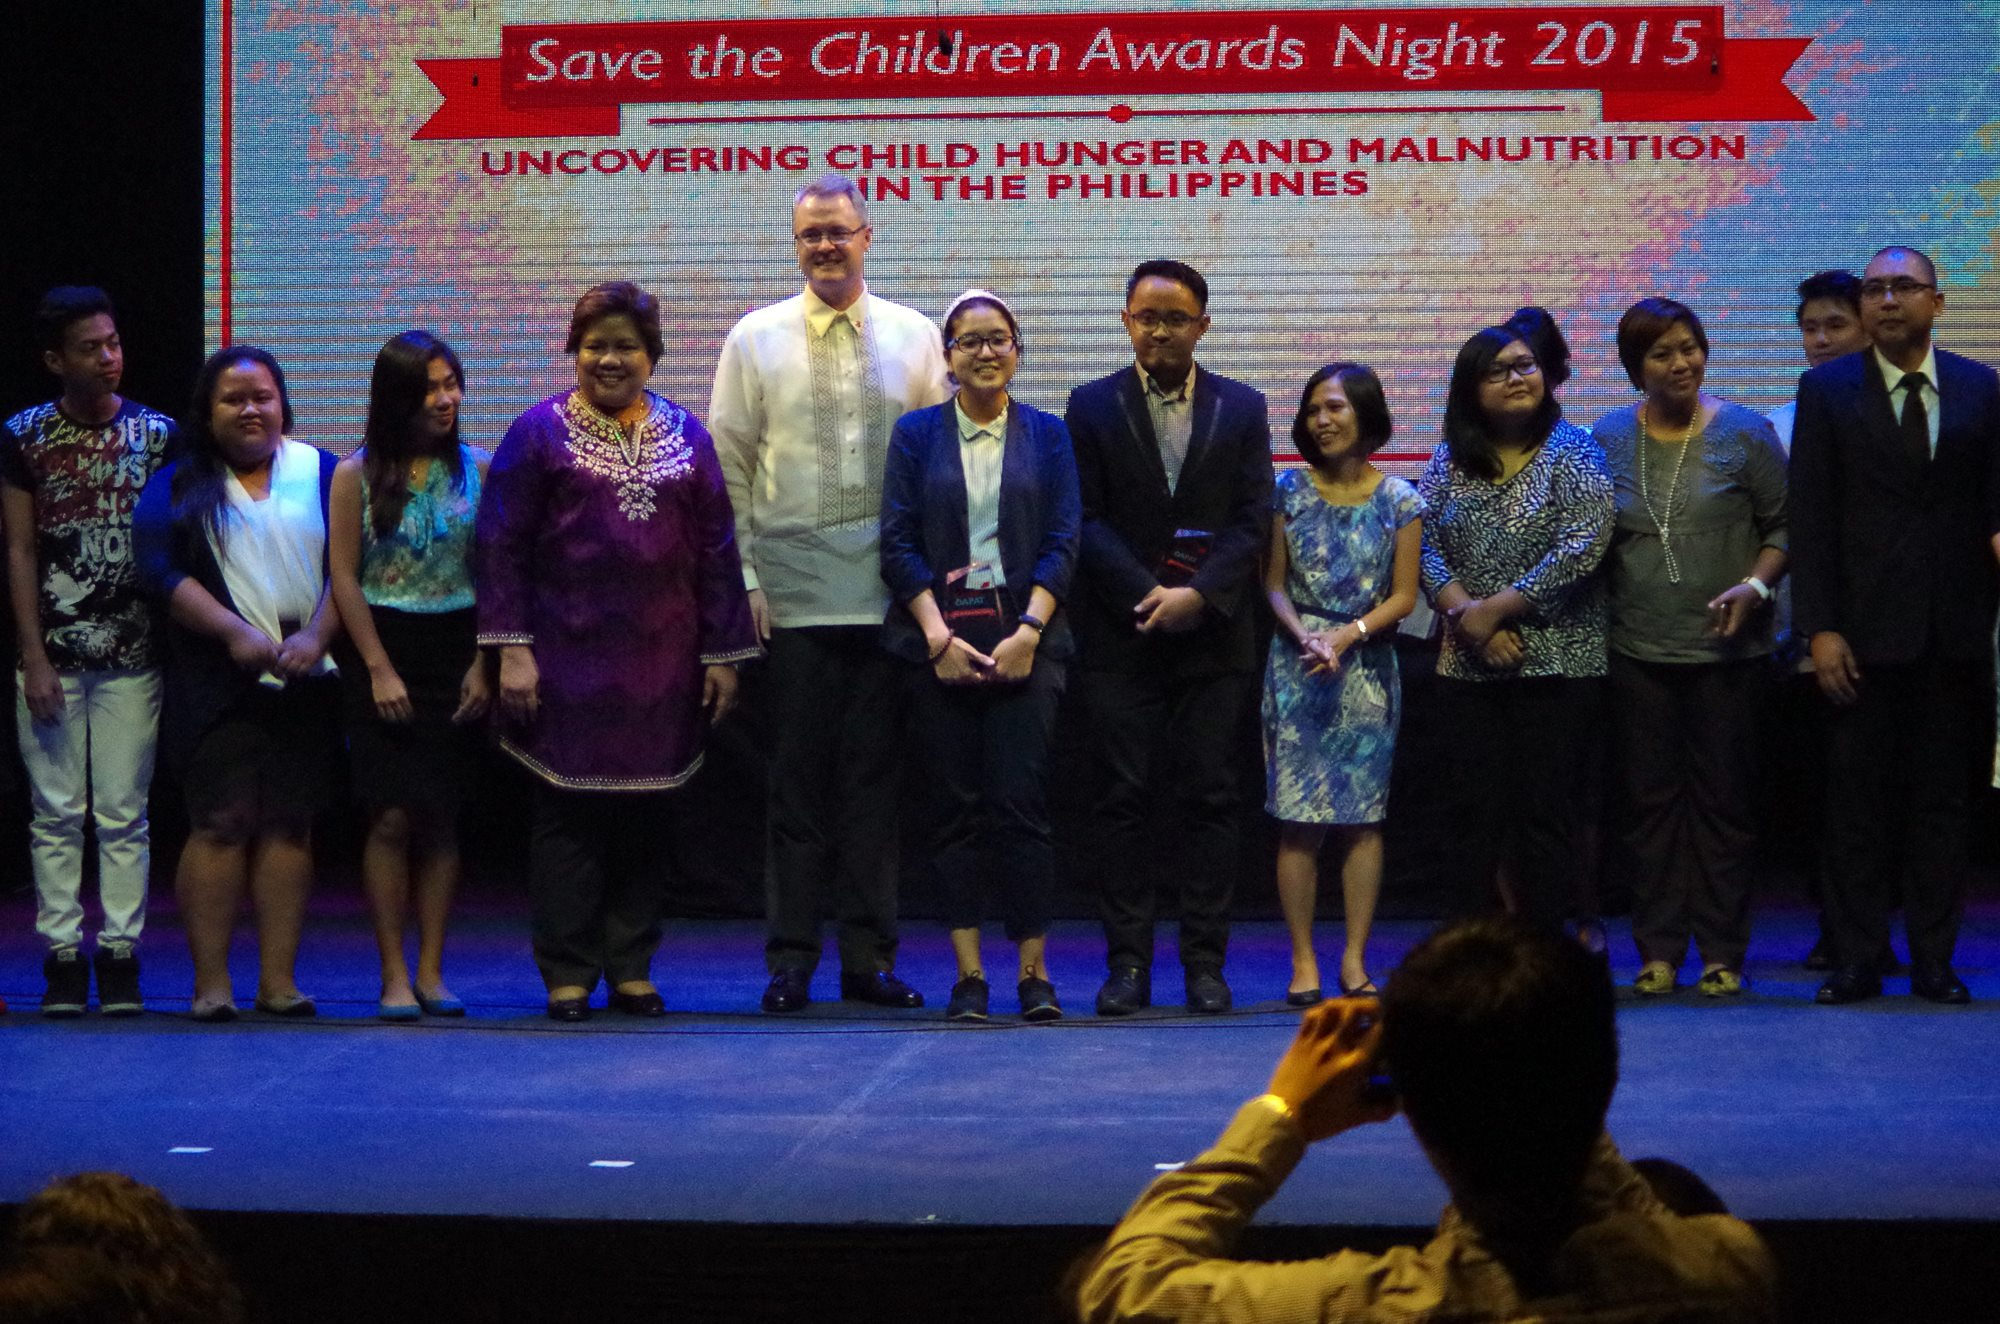 Bulatlat.coms' Ronalyn Olea was one of the finalists in the first Save the Children Media Awards: Uncovering child hunger and malnutrition. (Photo by Fred Dabu/ Bulatlat.com)